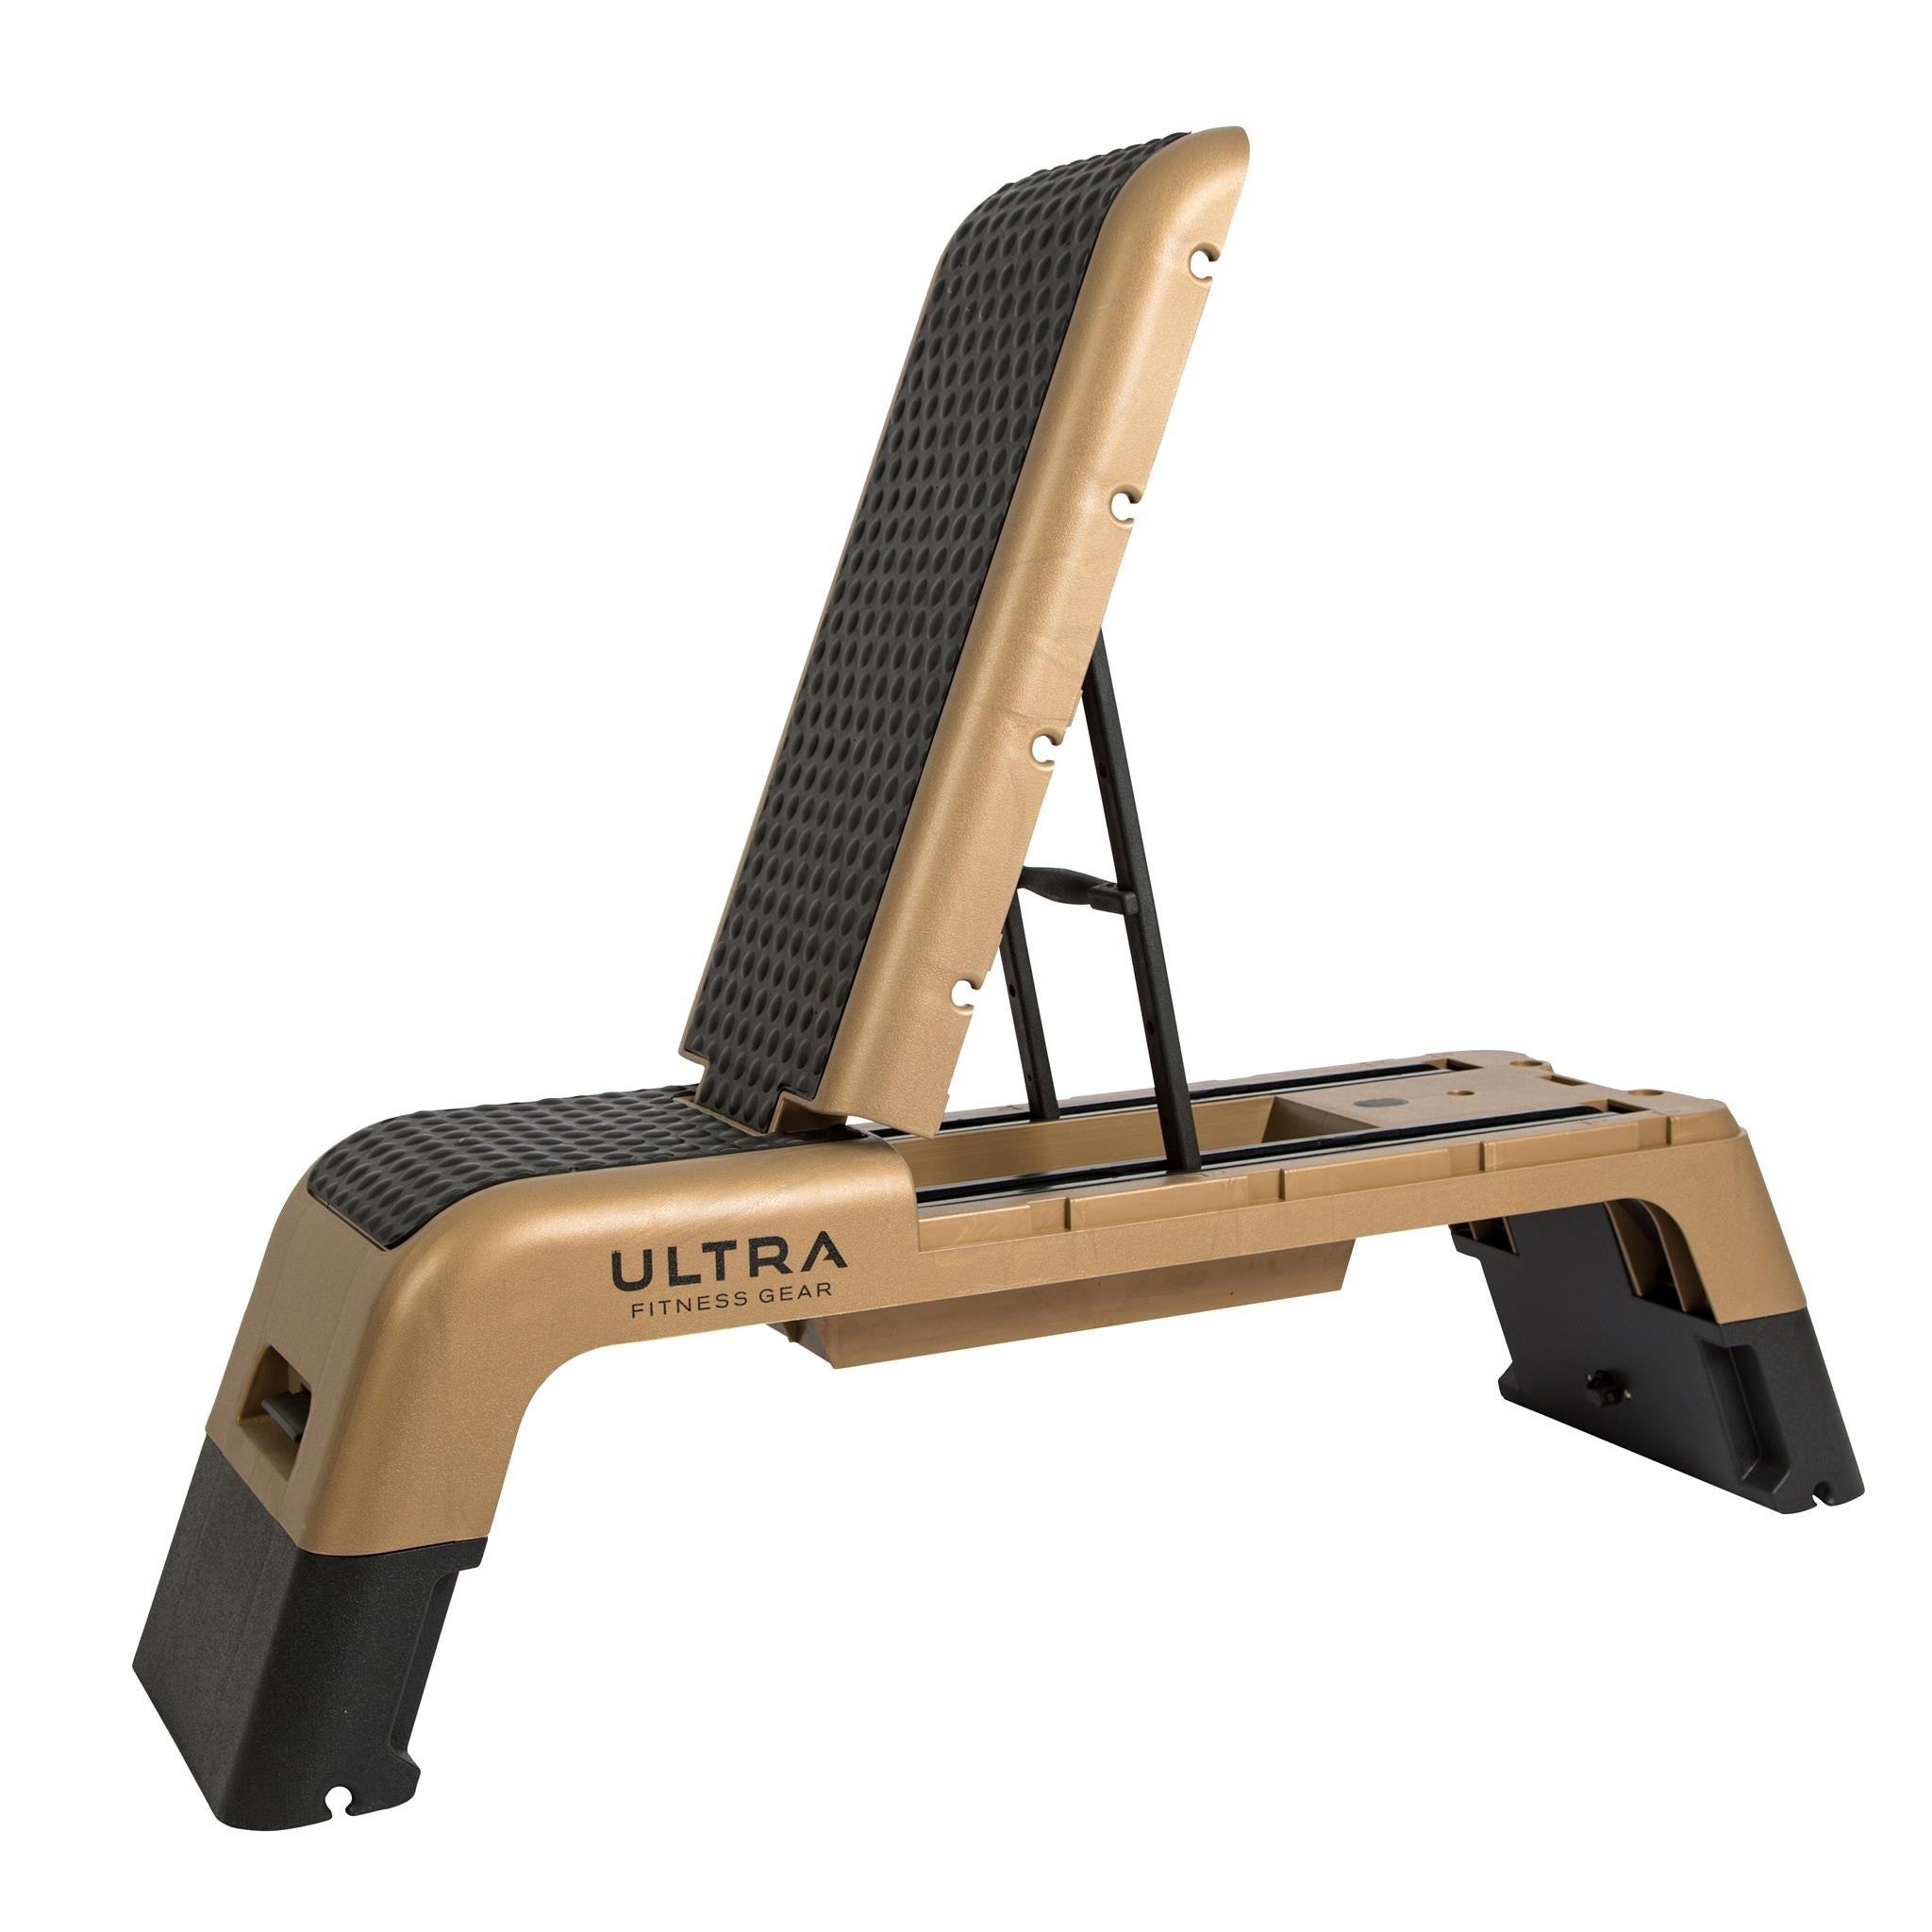 Shop ultra fitness gear adjustable workout deck versatile fitness